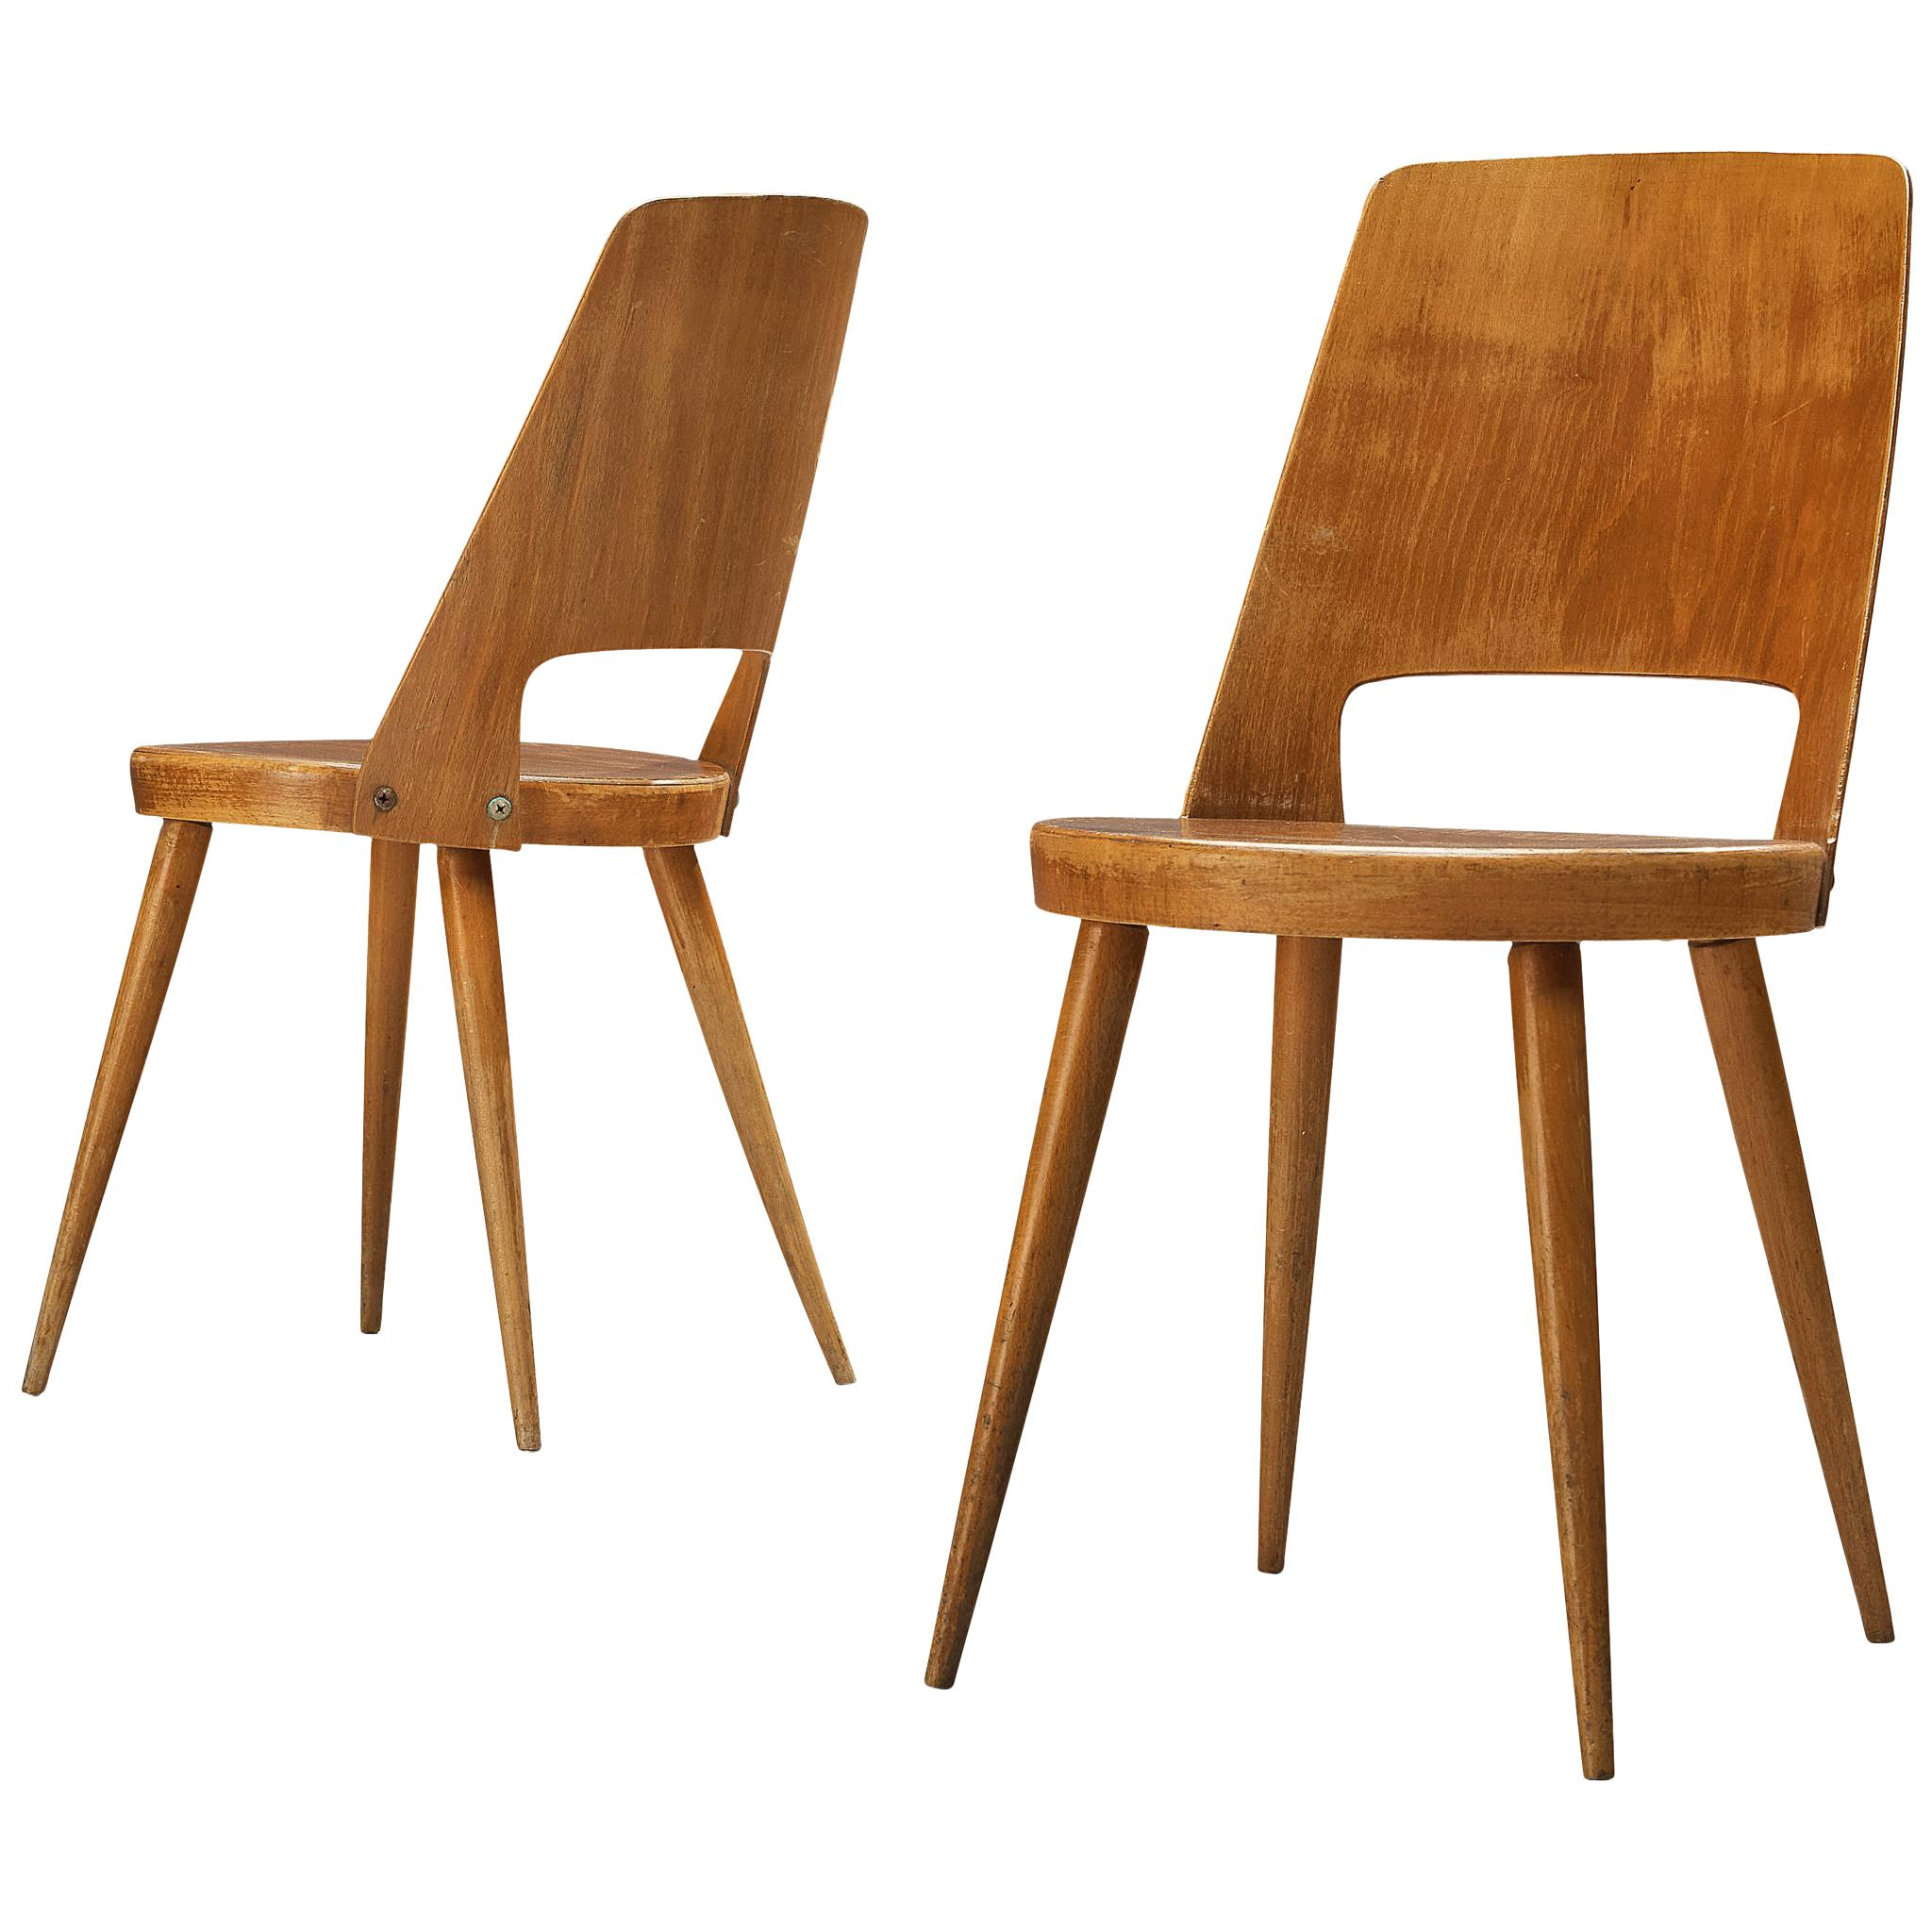 Jomaine Baumann 'Mondor' Dining Chairs in Plywood